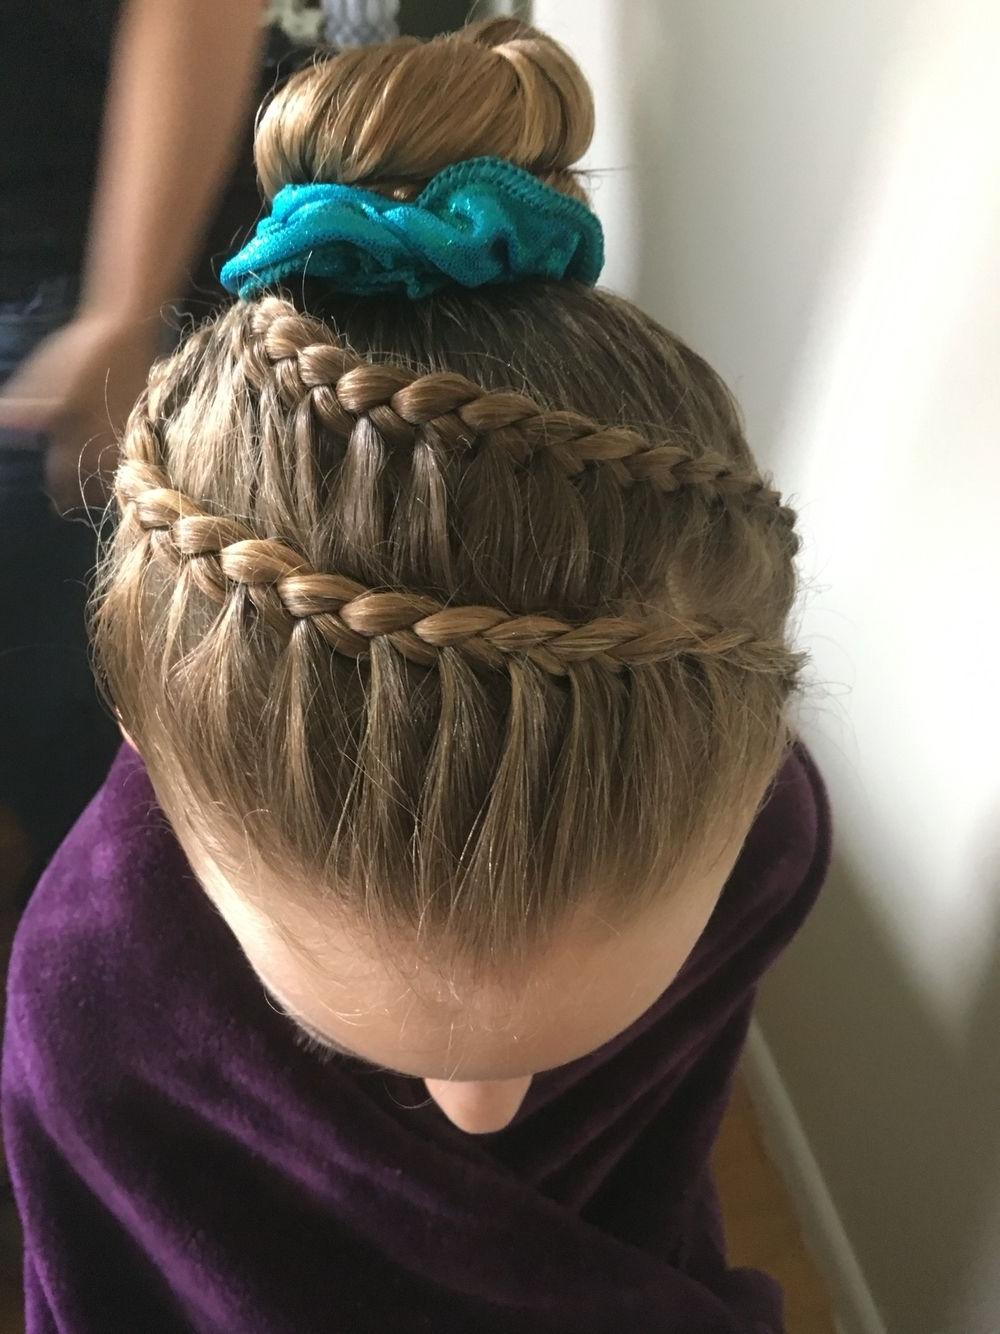 Gymnastics Competition Hair Braid (Gallery 2 of 15)